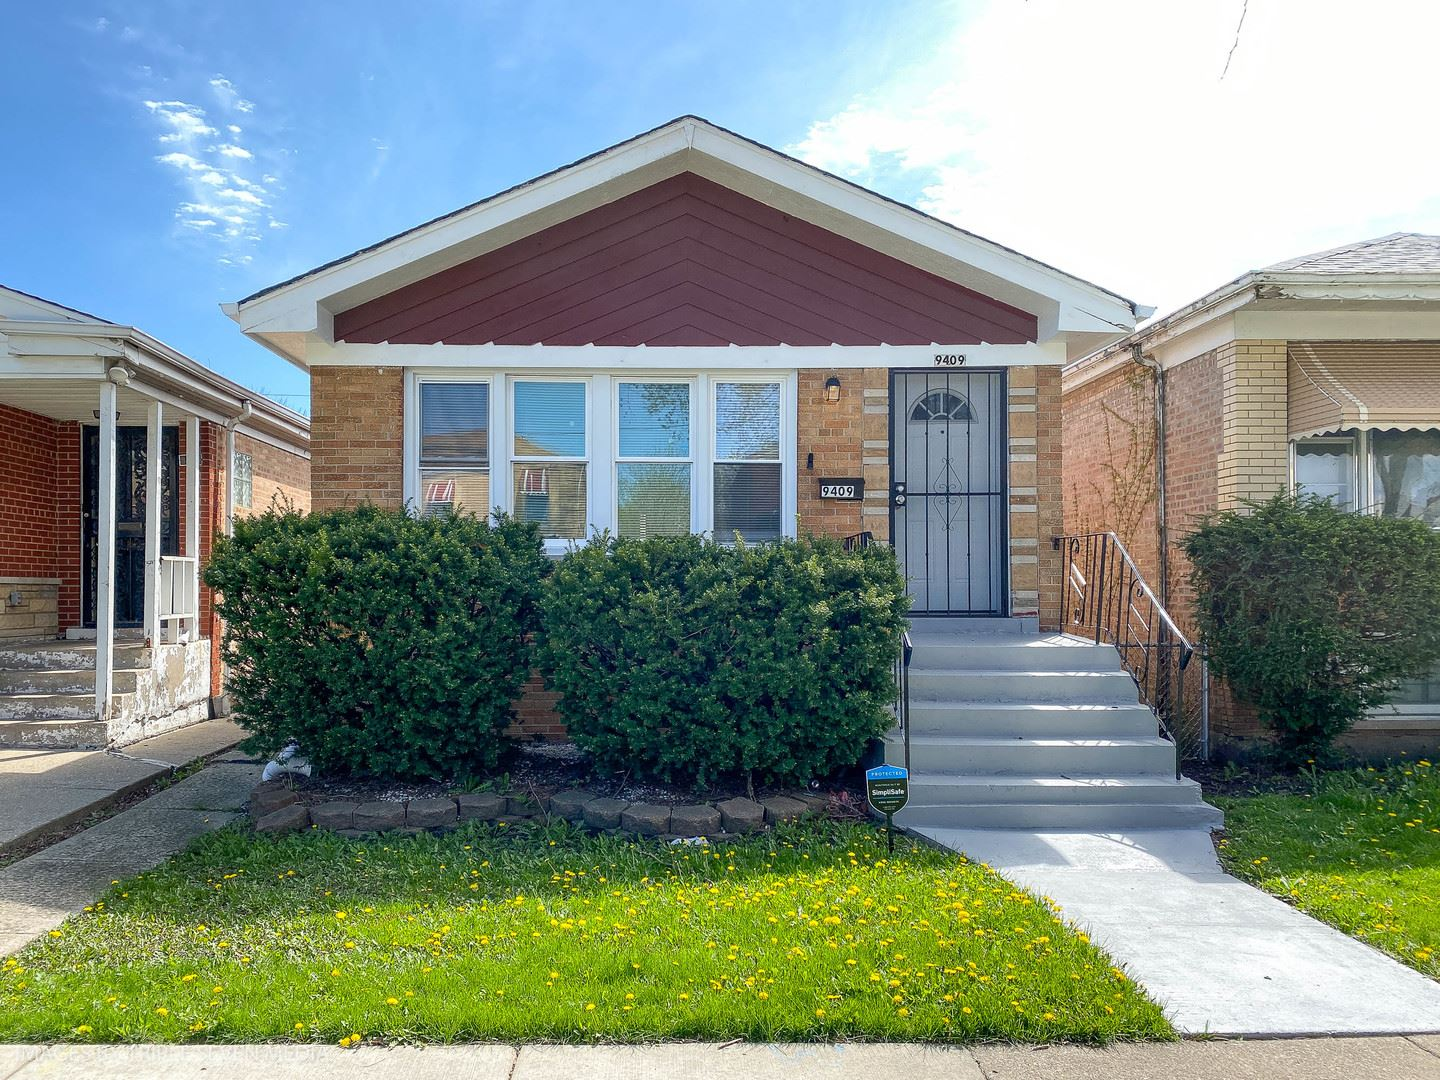 9409 S Normal Avenue, Chicago, IL 60620 - #: 10729416